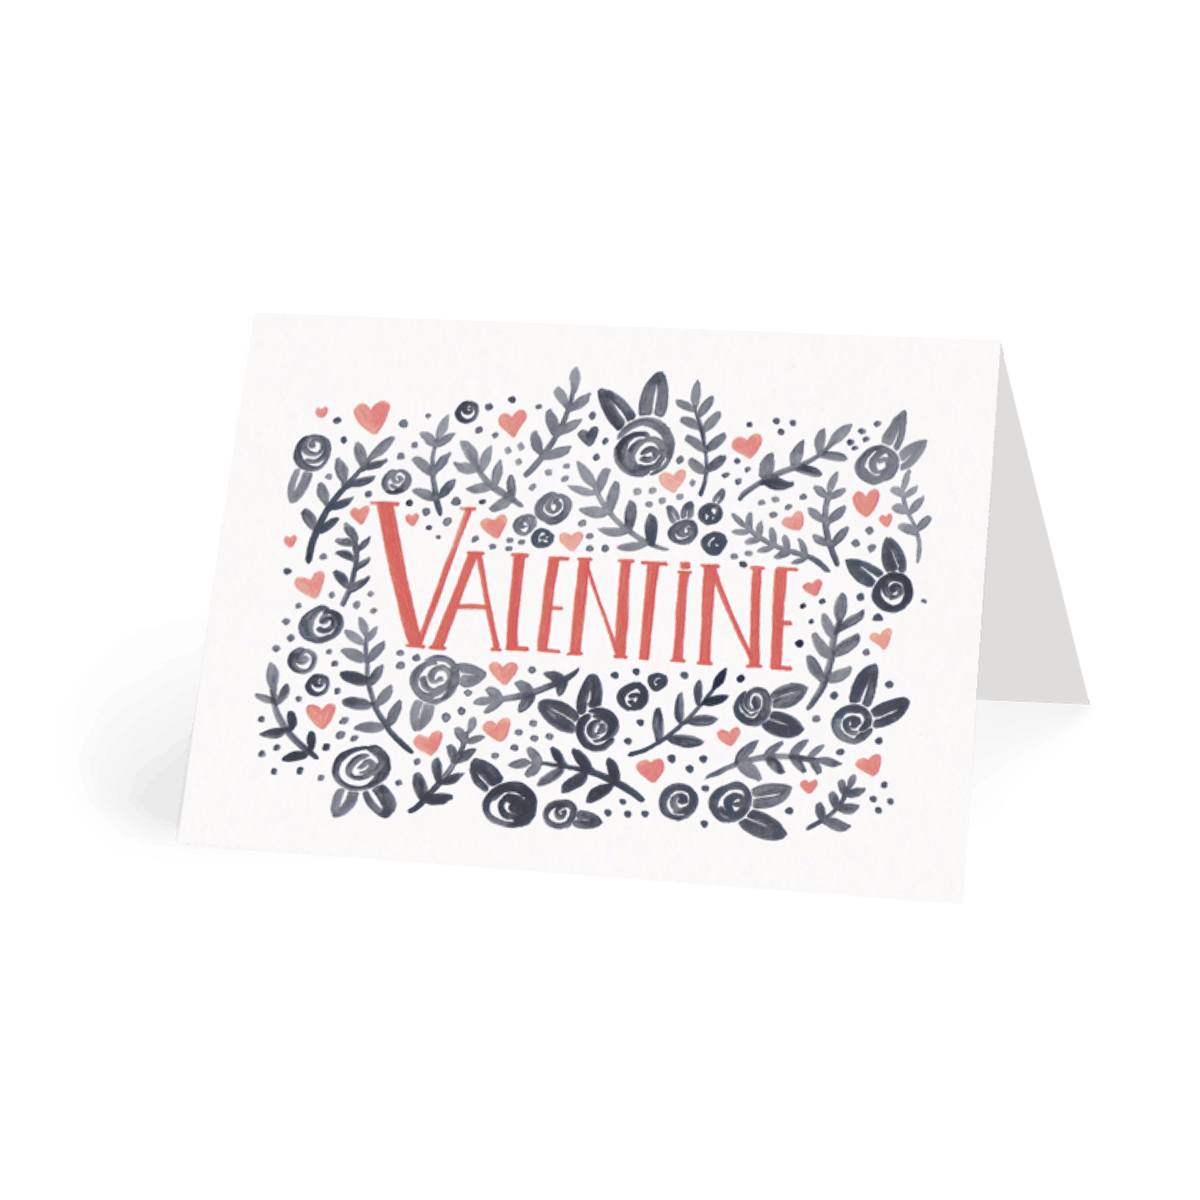 Https%3a%2f%2fwww.papier.com%2fproduct image%2f16861%2f14%2ffloral valentine 4436 front 1485258148.png?ixlib=rb 1.1